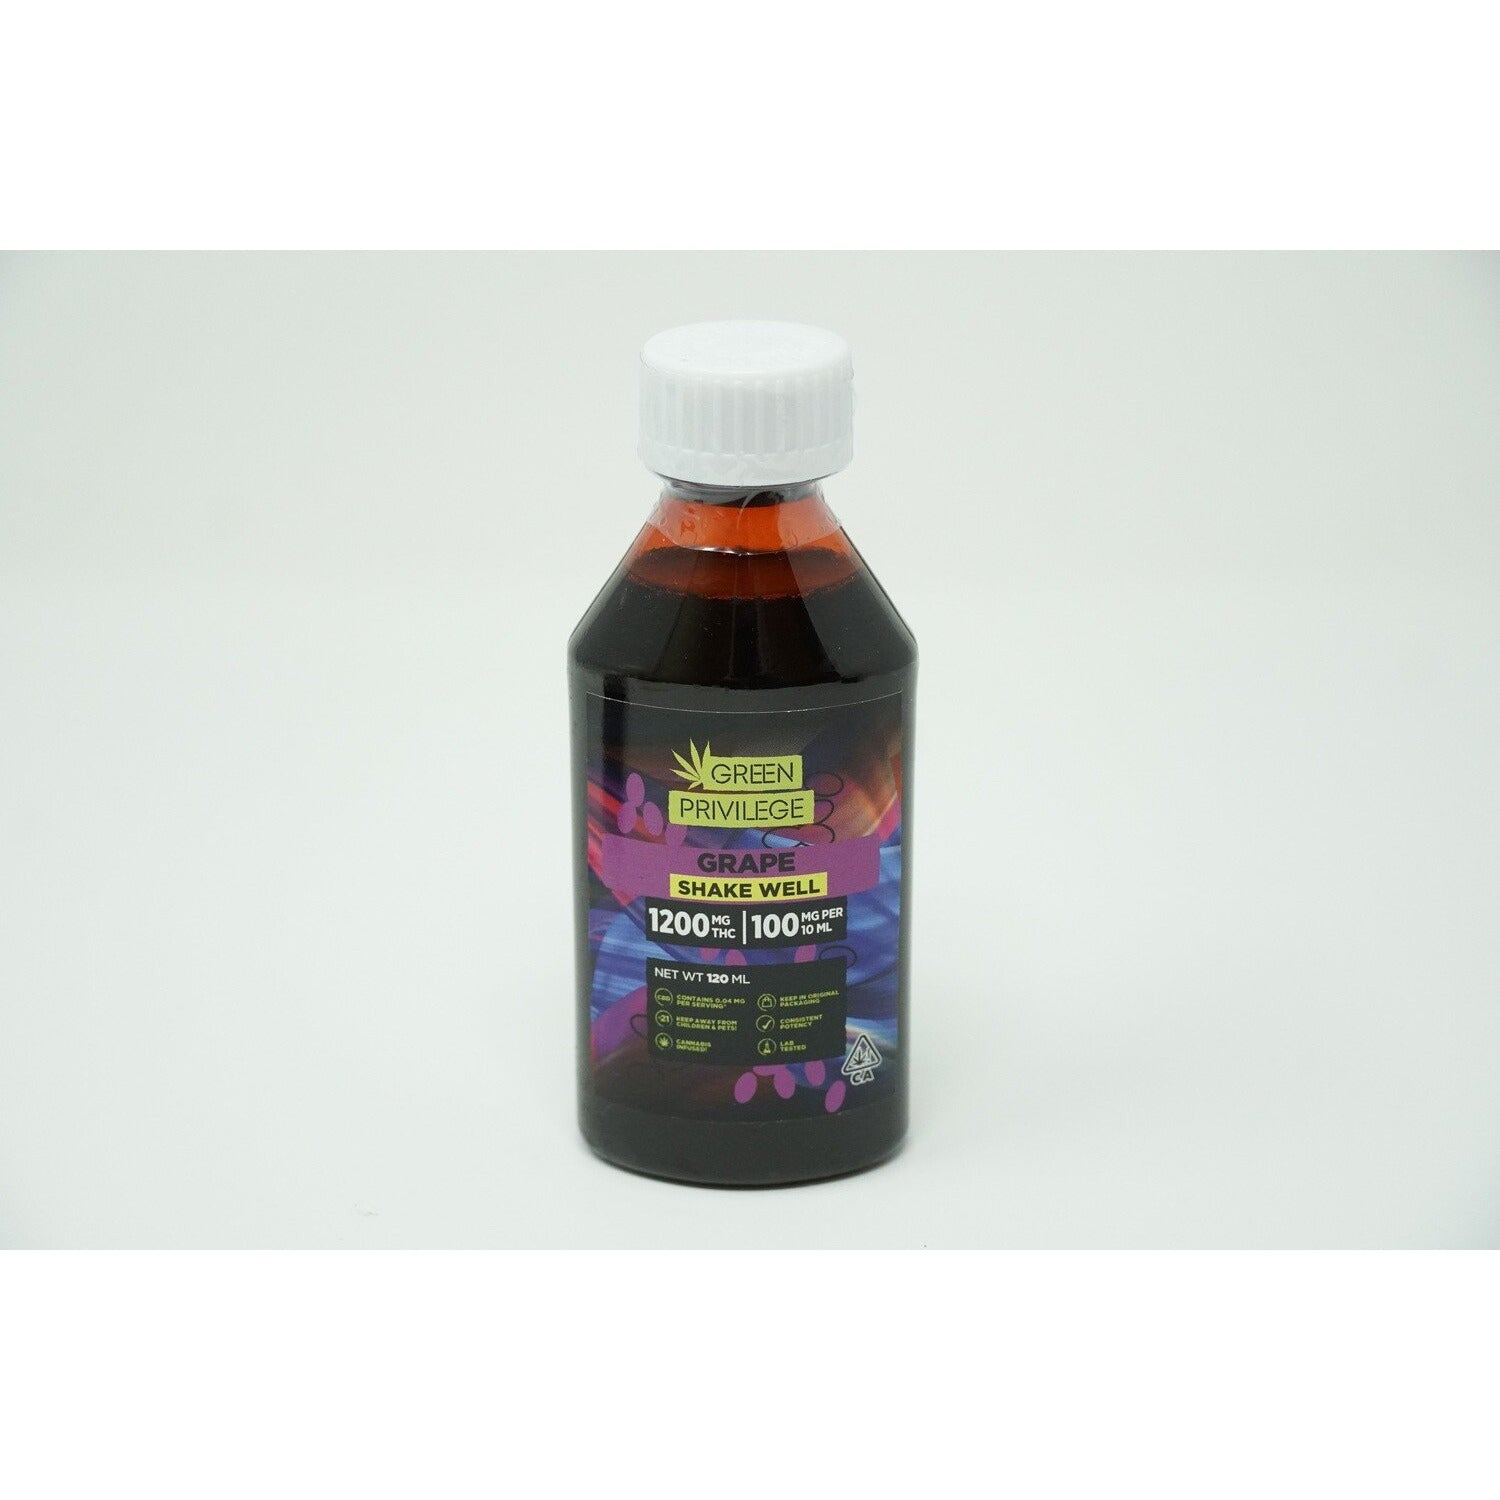 Green Privilege Syrup - Grape 1200mg